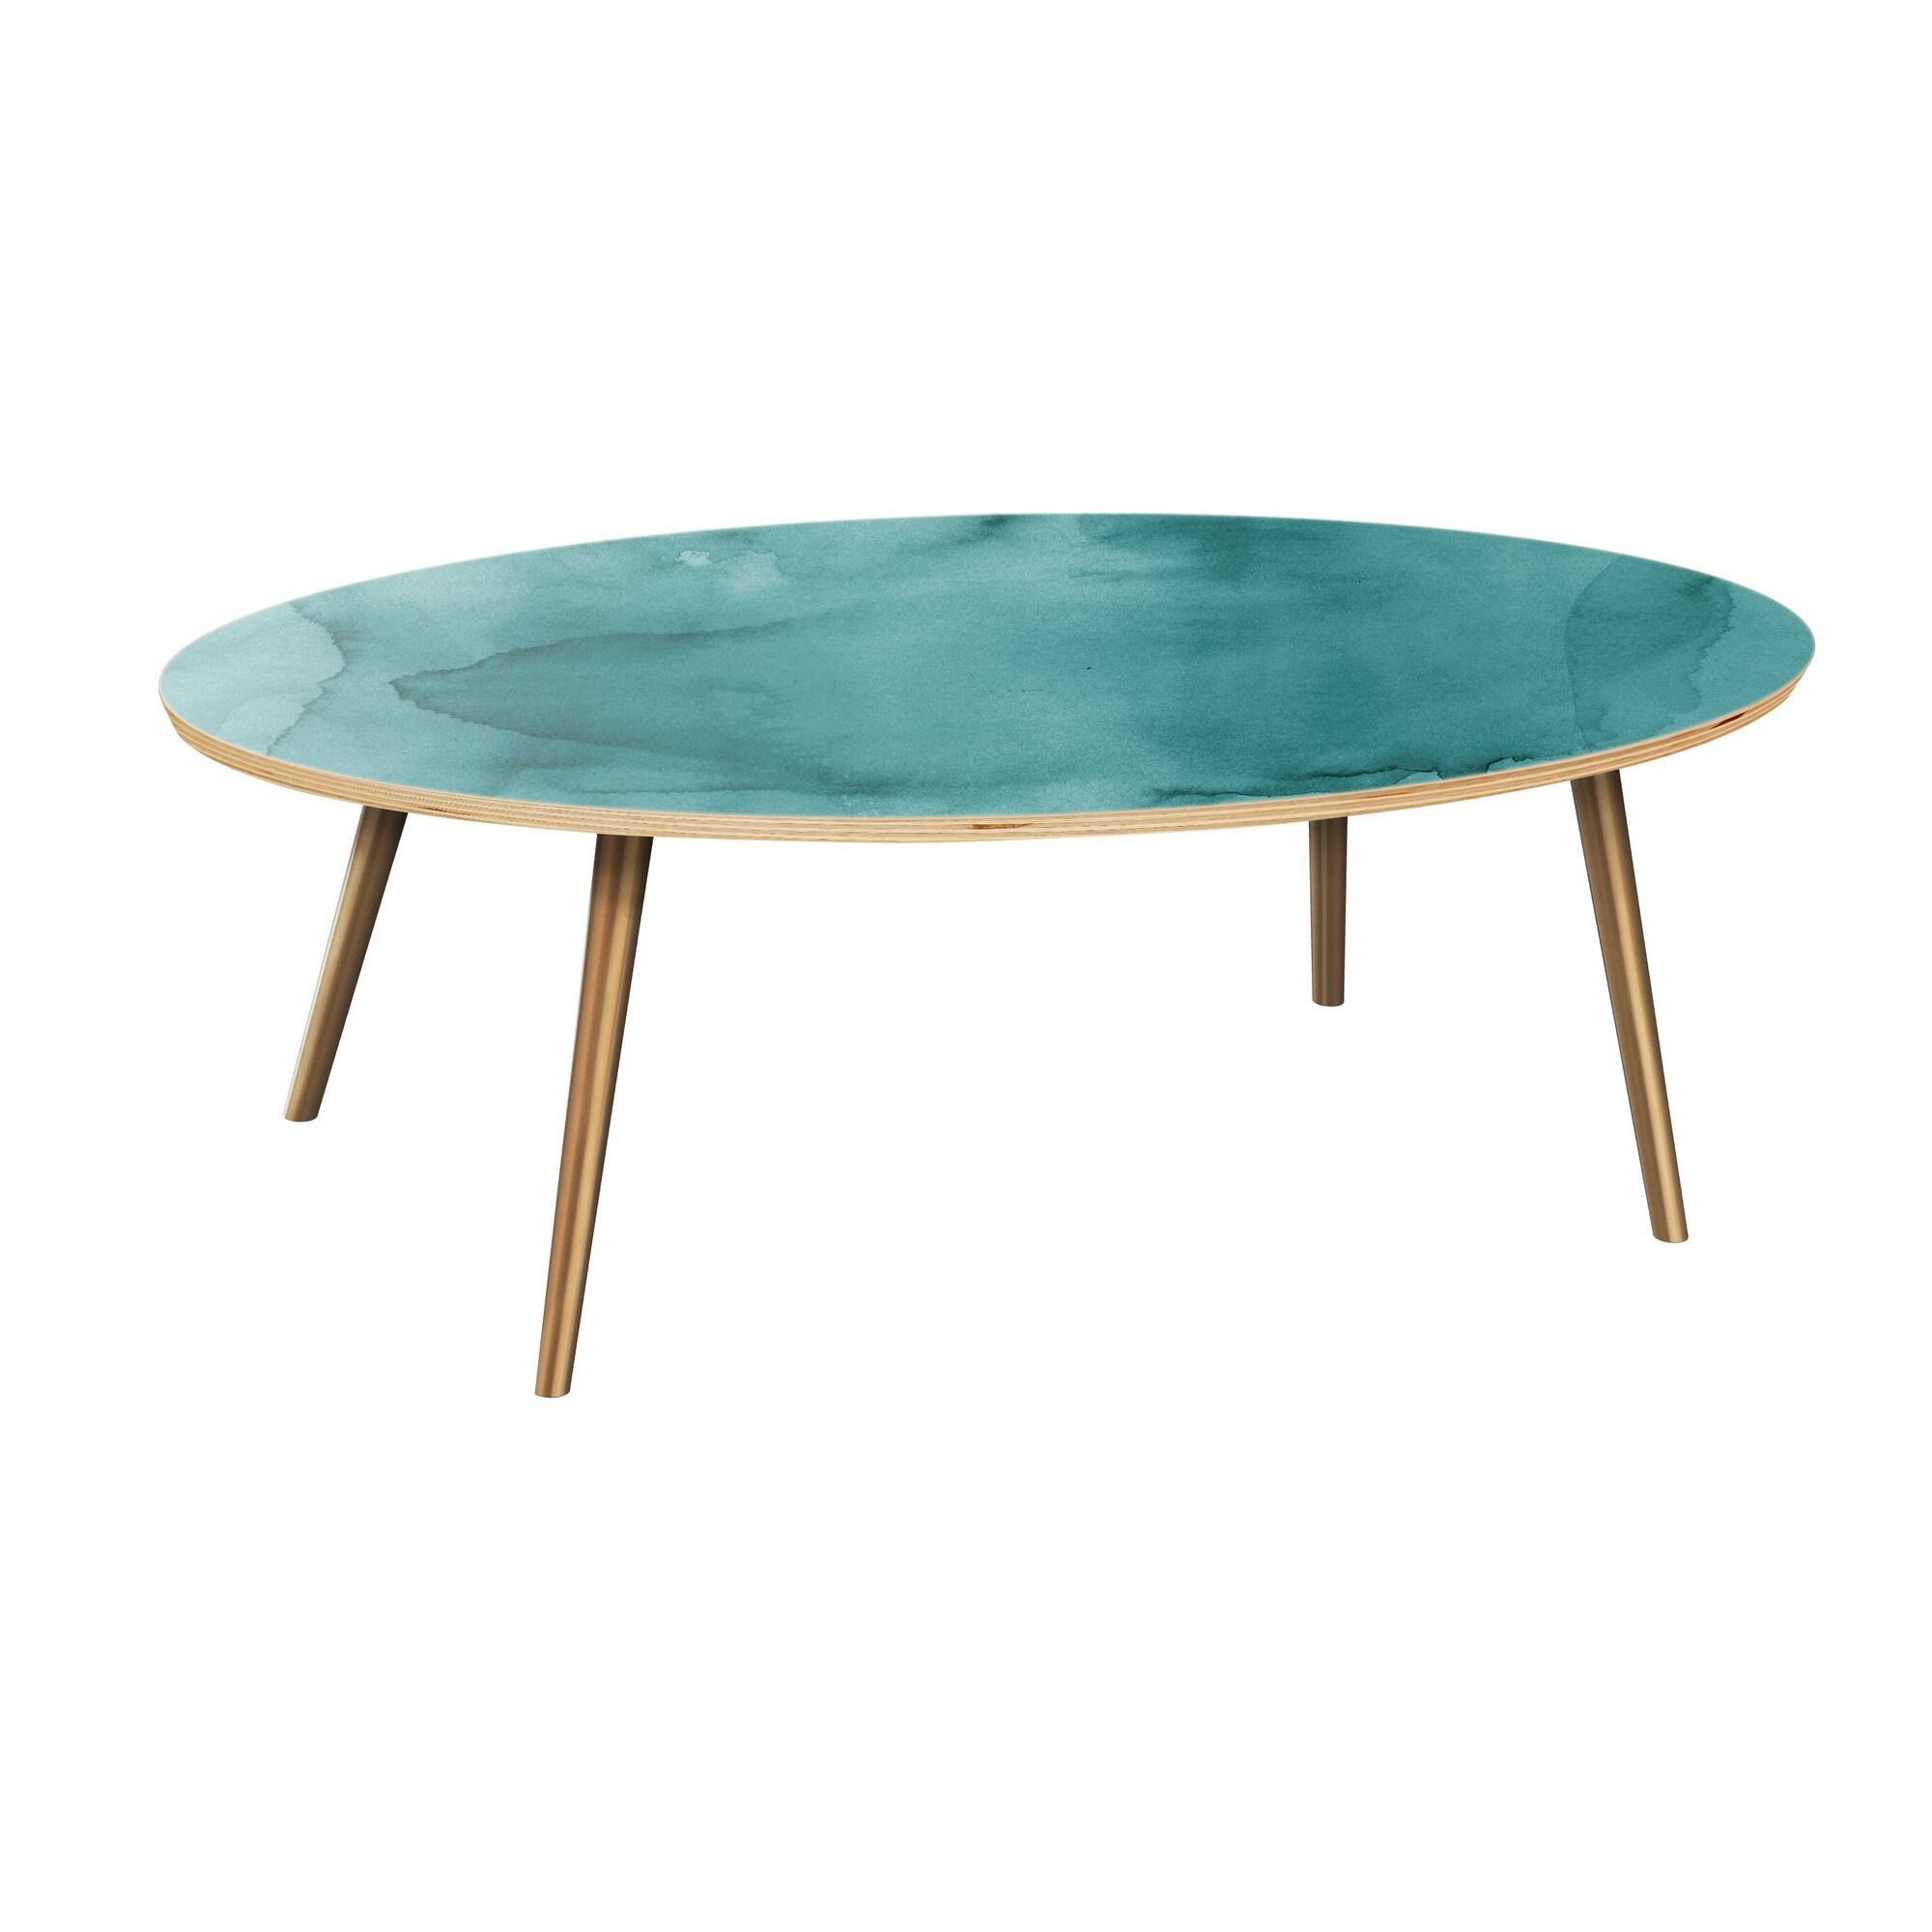 Rayes Coffee Table Table Top Boarder Color: Natural, Table Base Color: Brass, Table Top Color: Pink